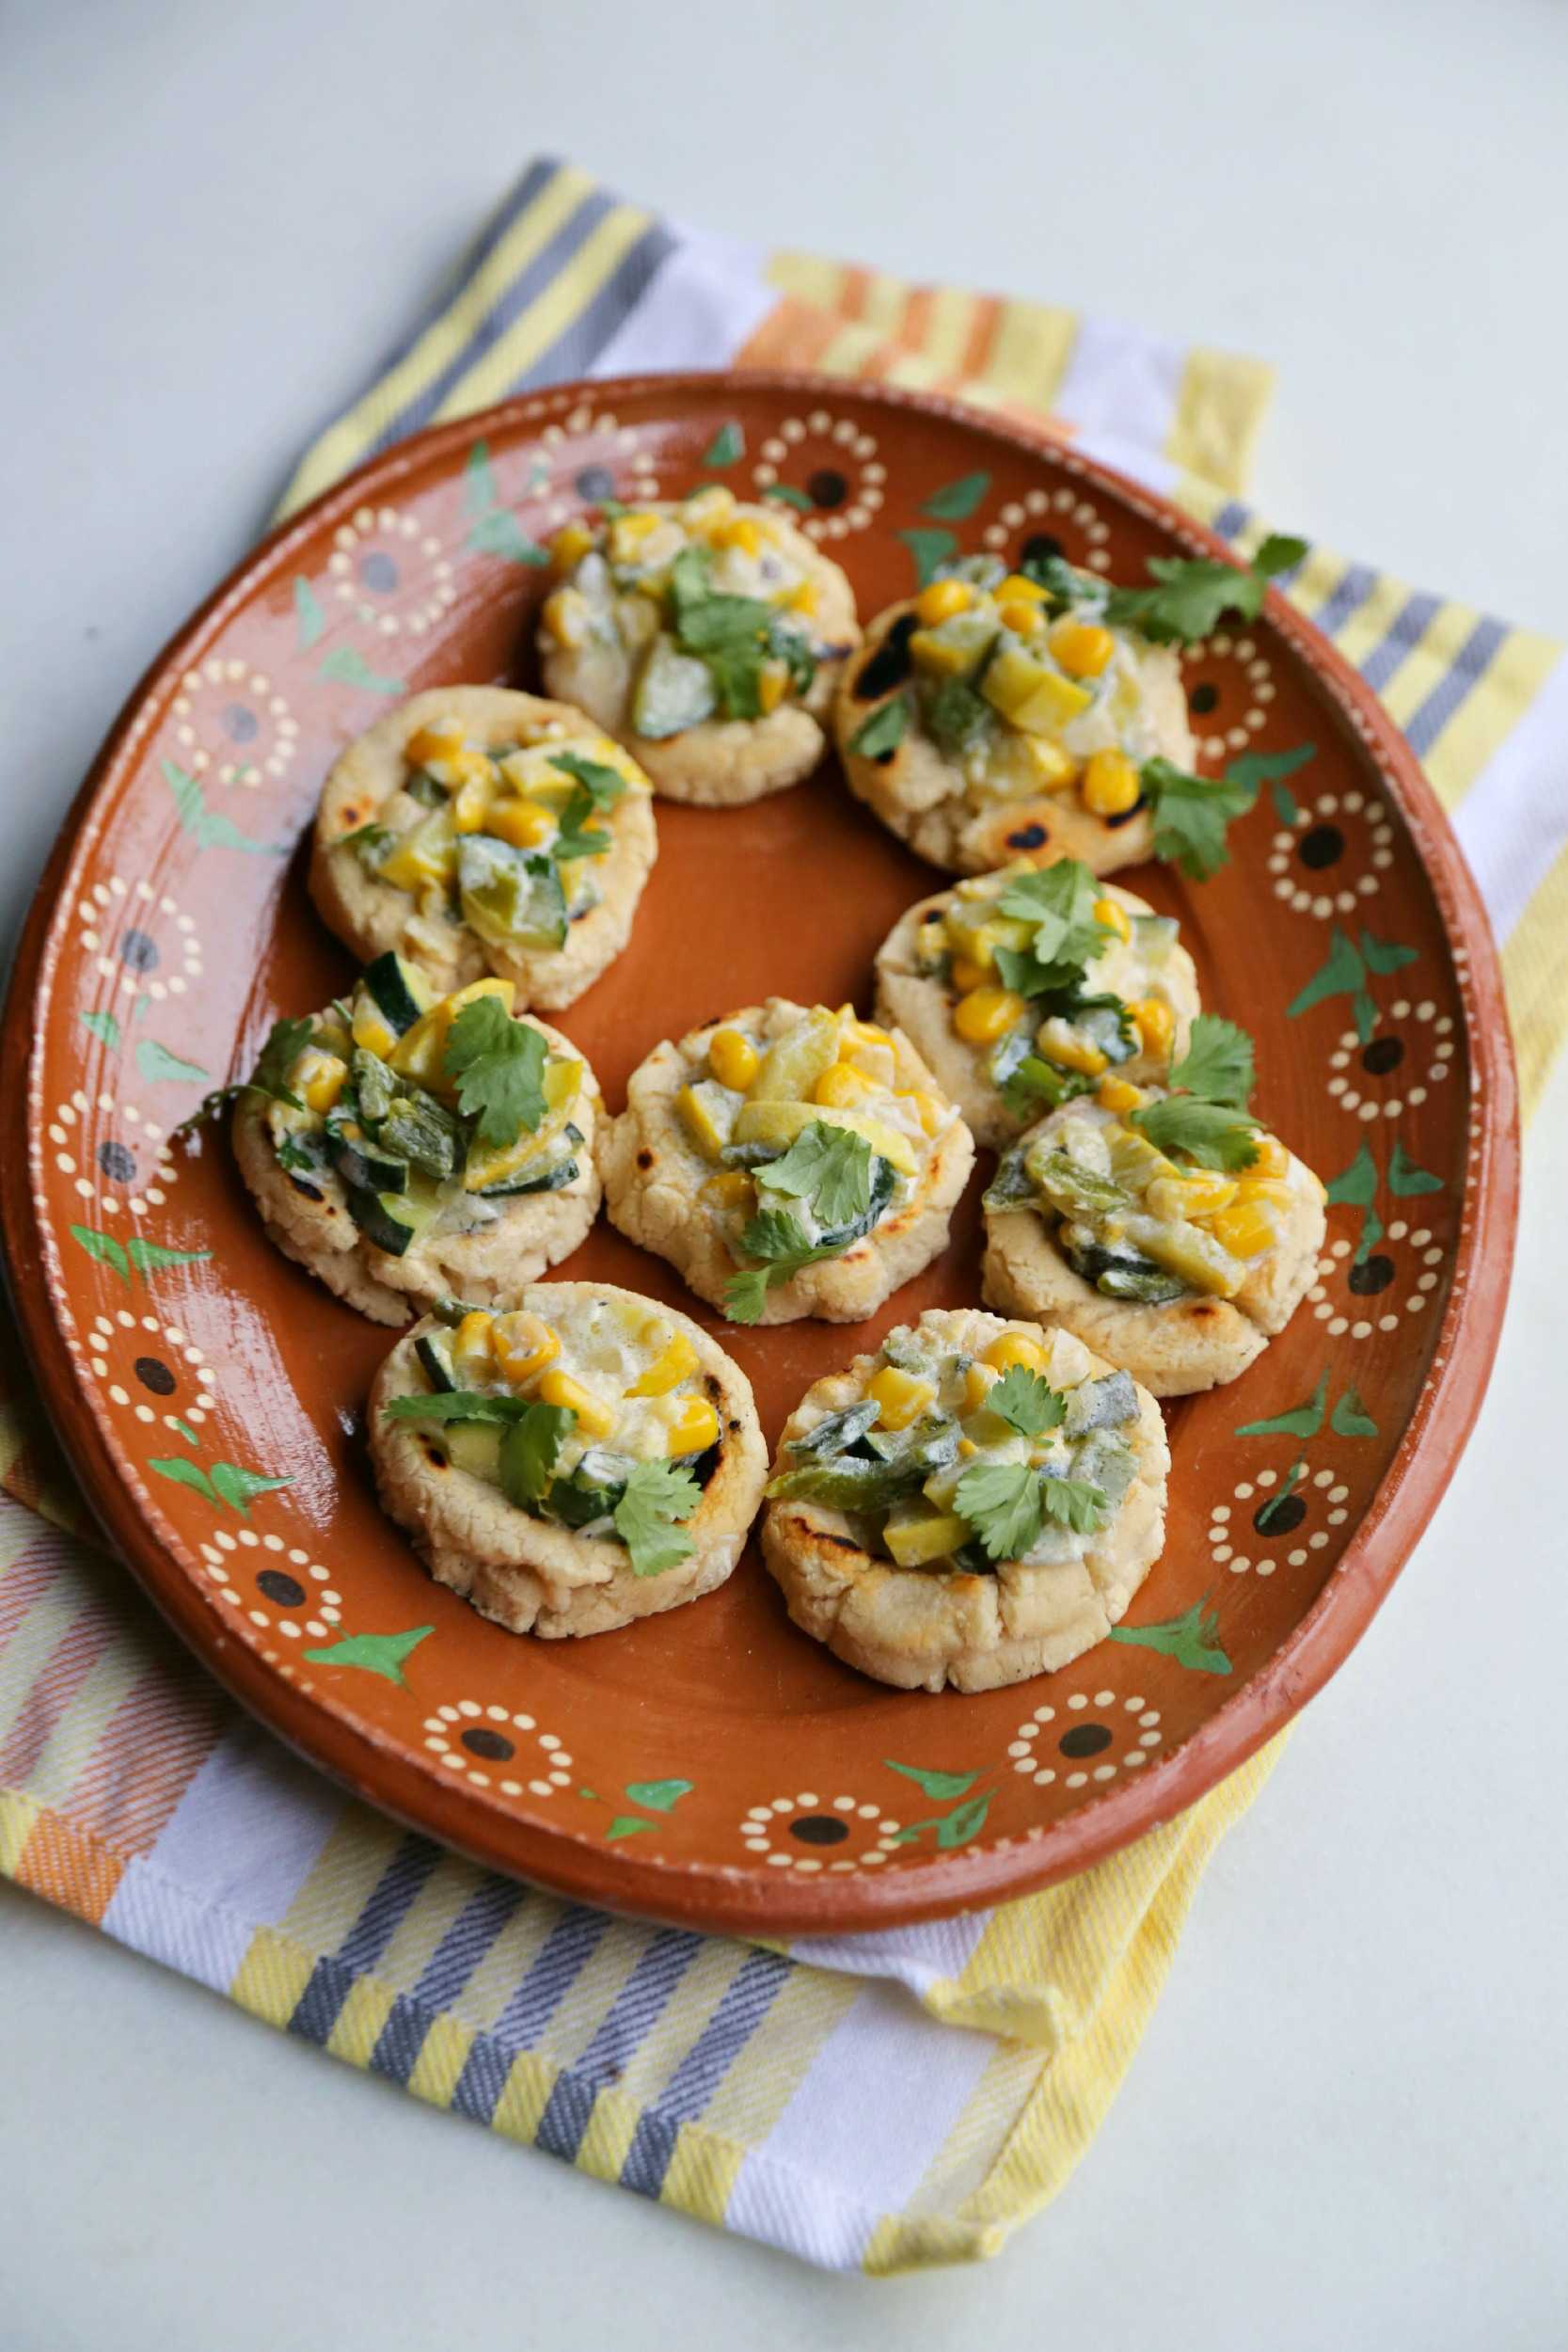 mini-sopes-topped-with-calabacitas-con-crema-vianneyrodriguez-sweetlifebake